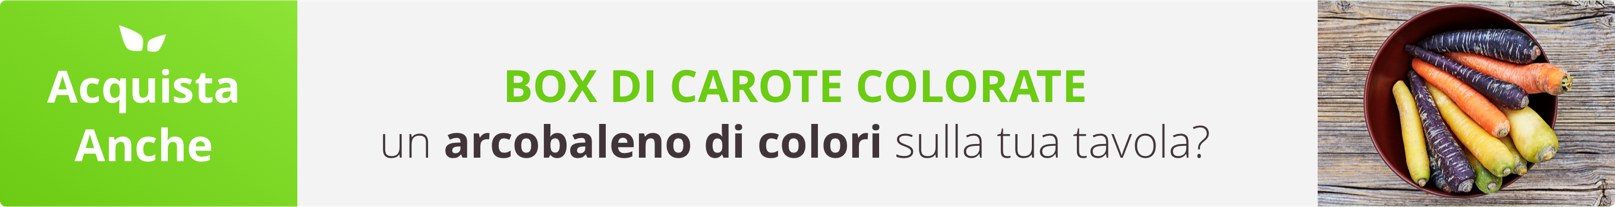 Acquista Online Box di Carote Colorate con un Click su FruttaWeb.com